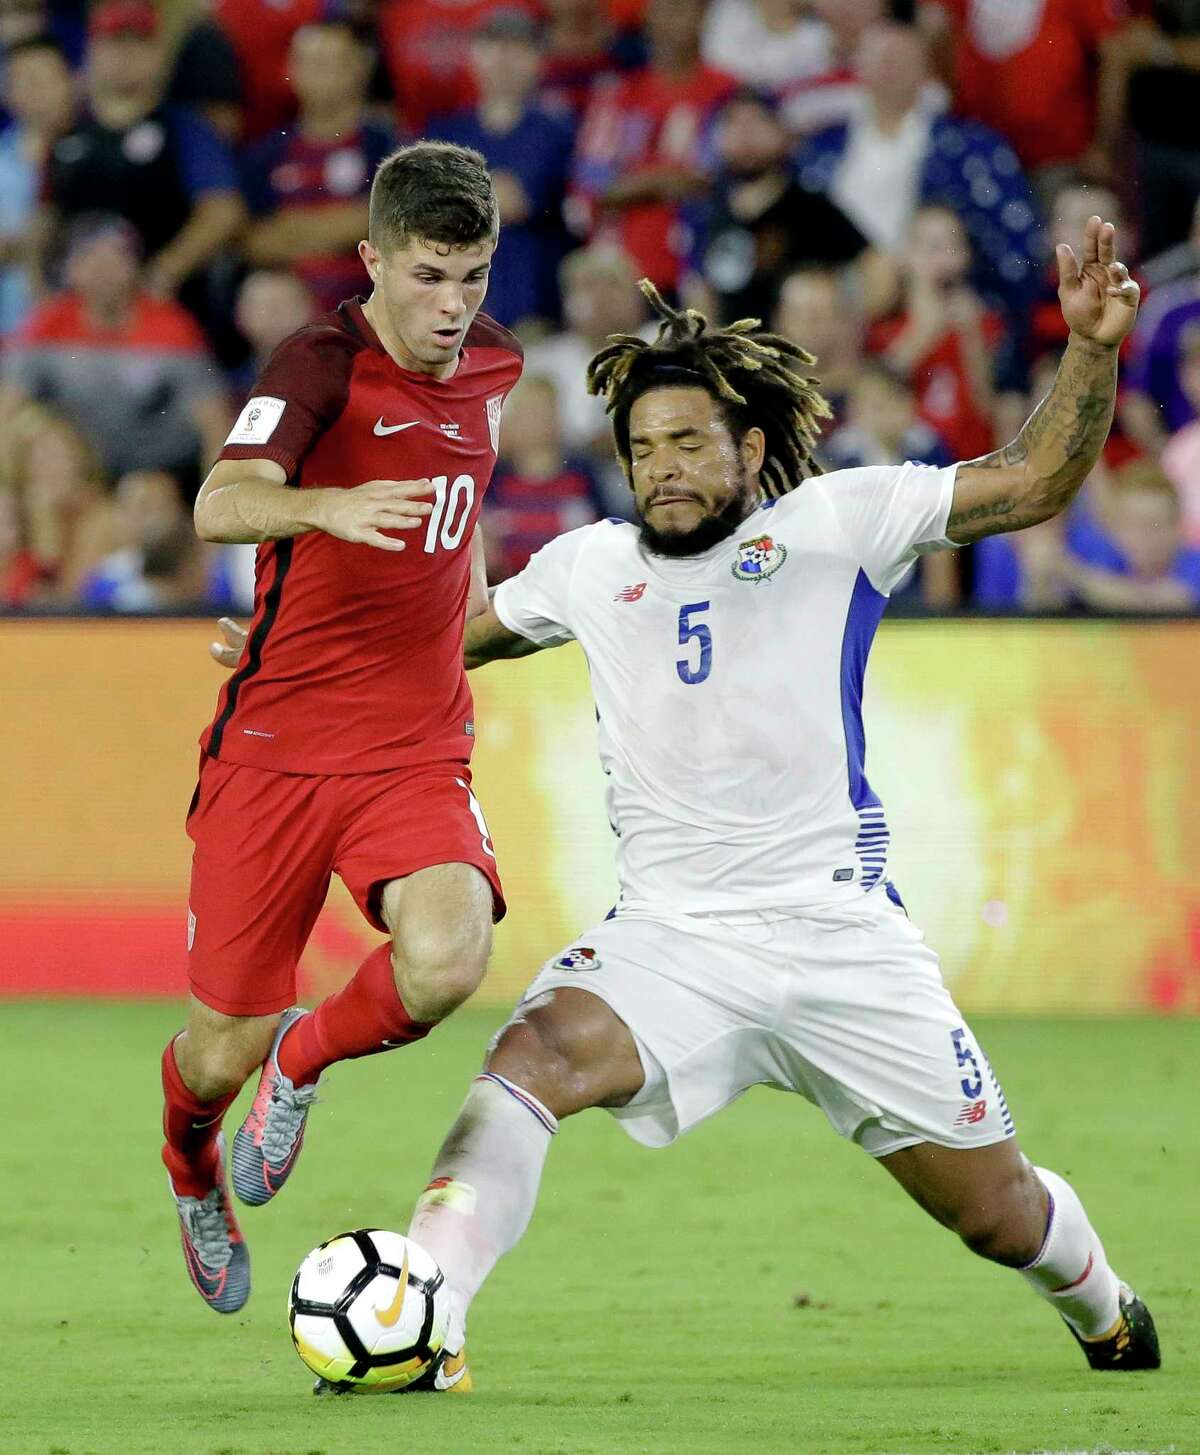 United States' Christian Pulisic (10) tries to get past Panama's Roman Torres (5) during the first half of a World Cup qualifying soccer match, Friday, Oct. 6, 2017, in Orlando, Fla. (AP Photo/John Raoux) ORG XMIT: FLJR107